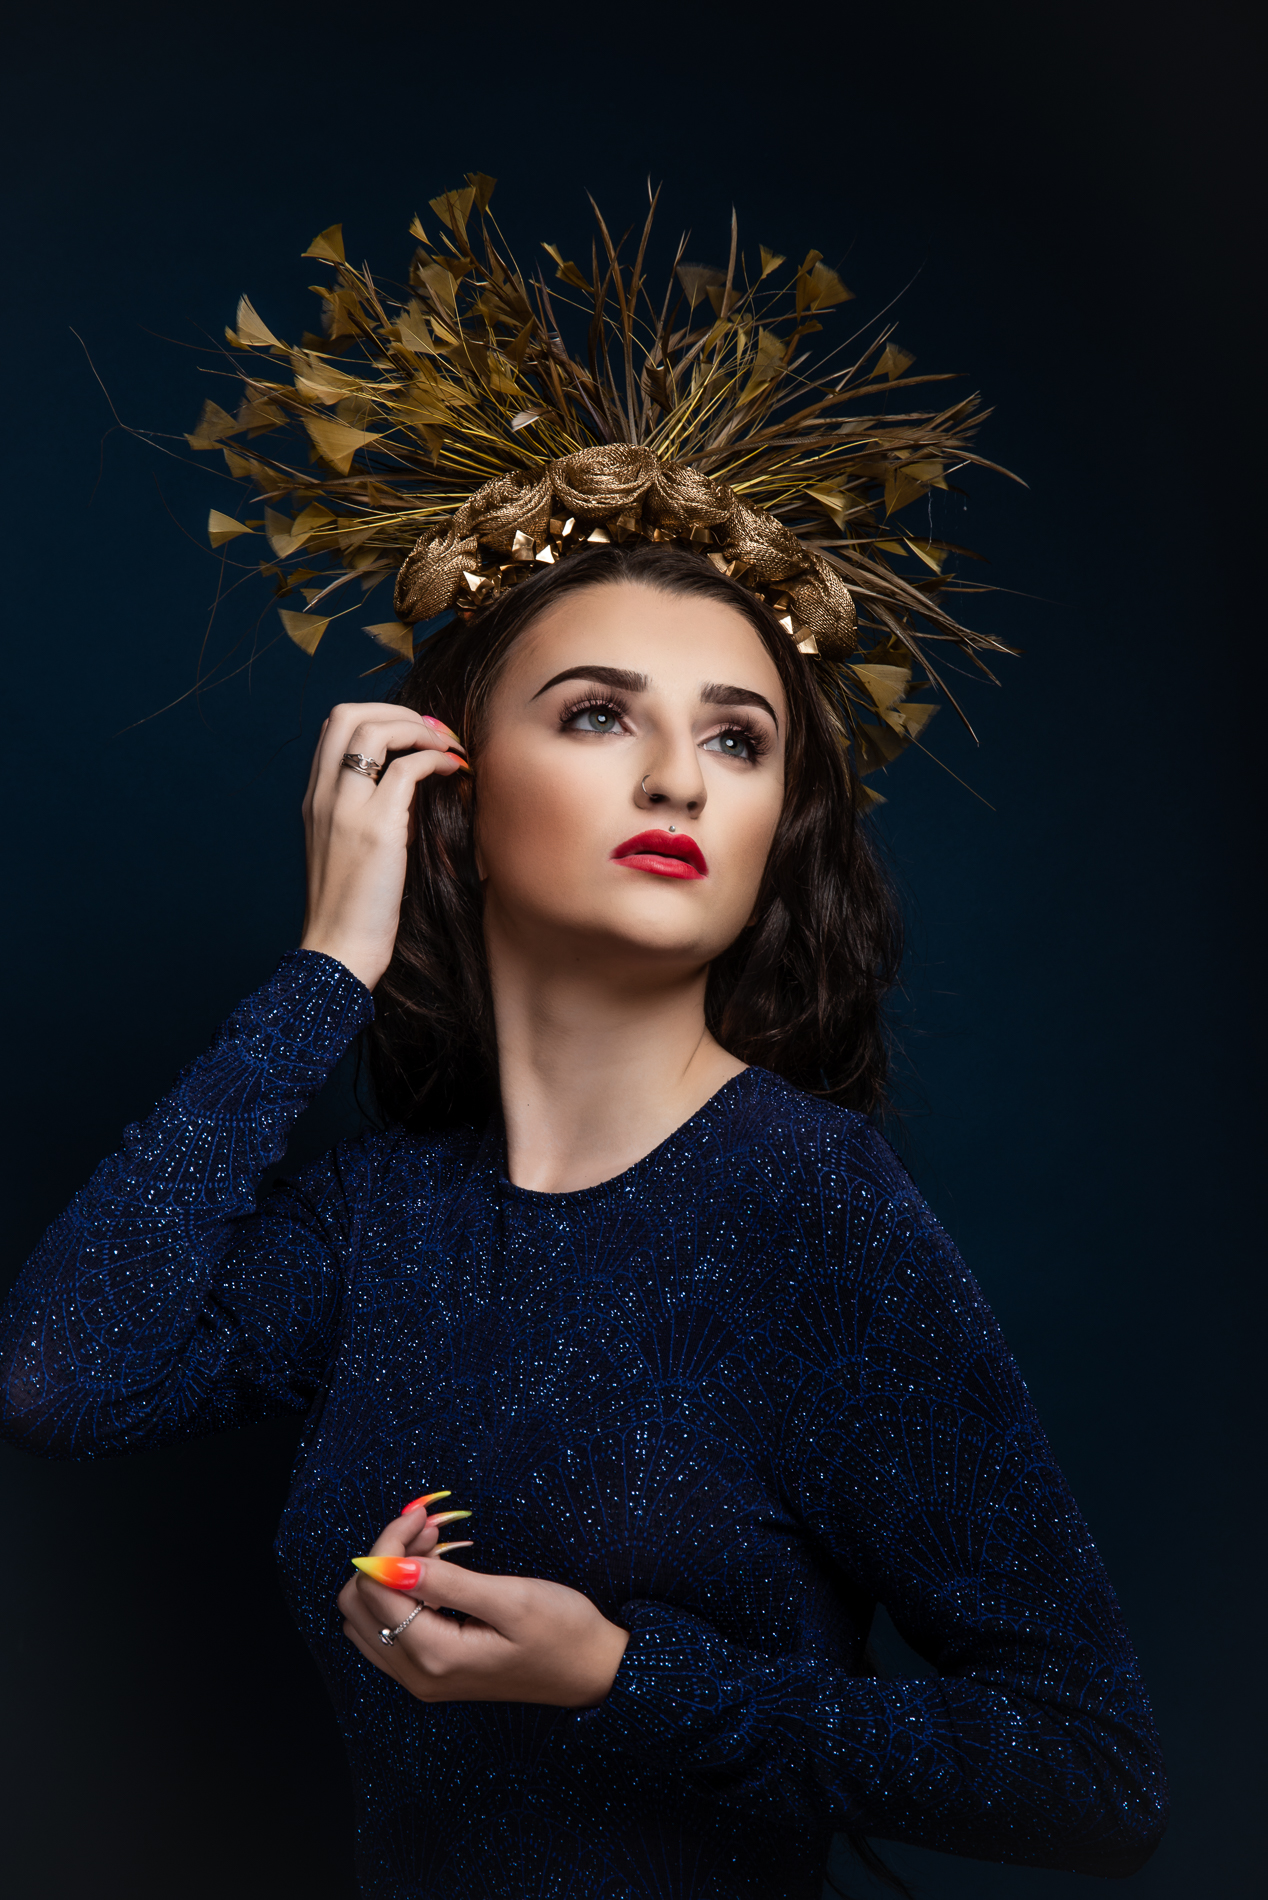 The Portrait Kitchen Roses of Gold by Gemma Holley Millinery